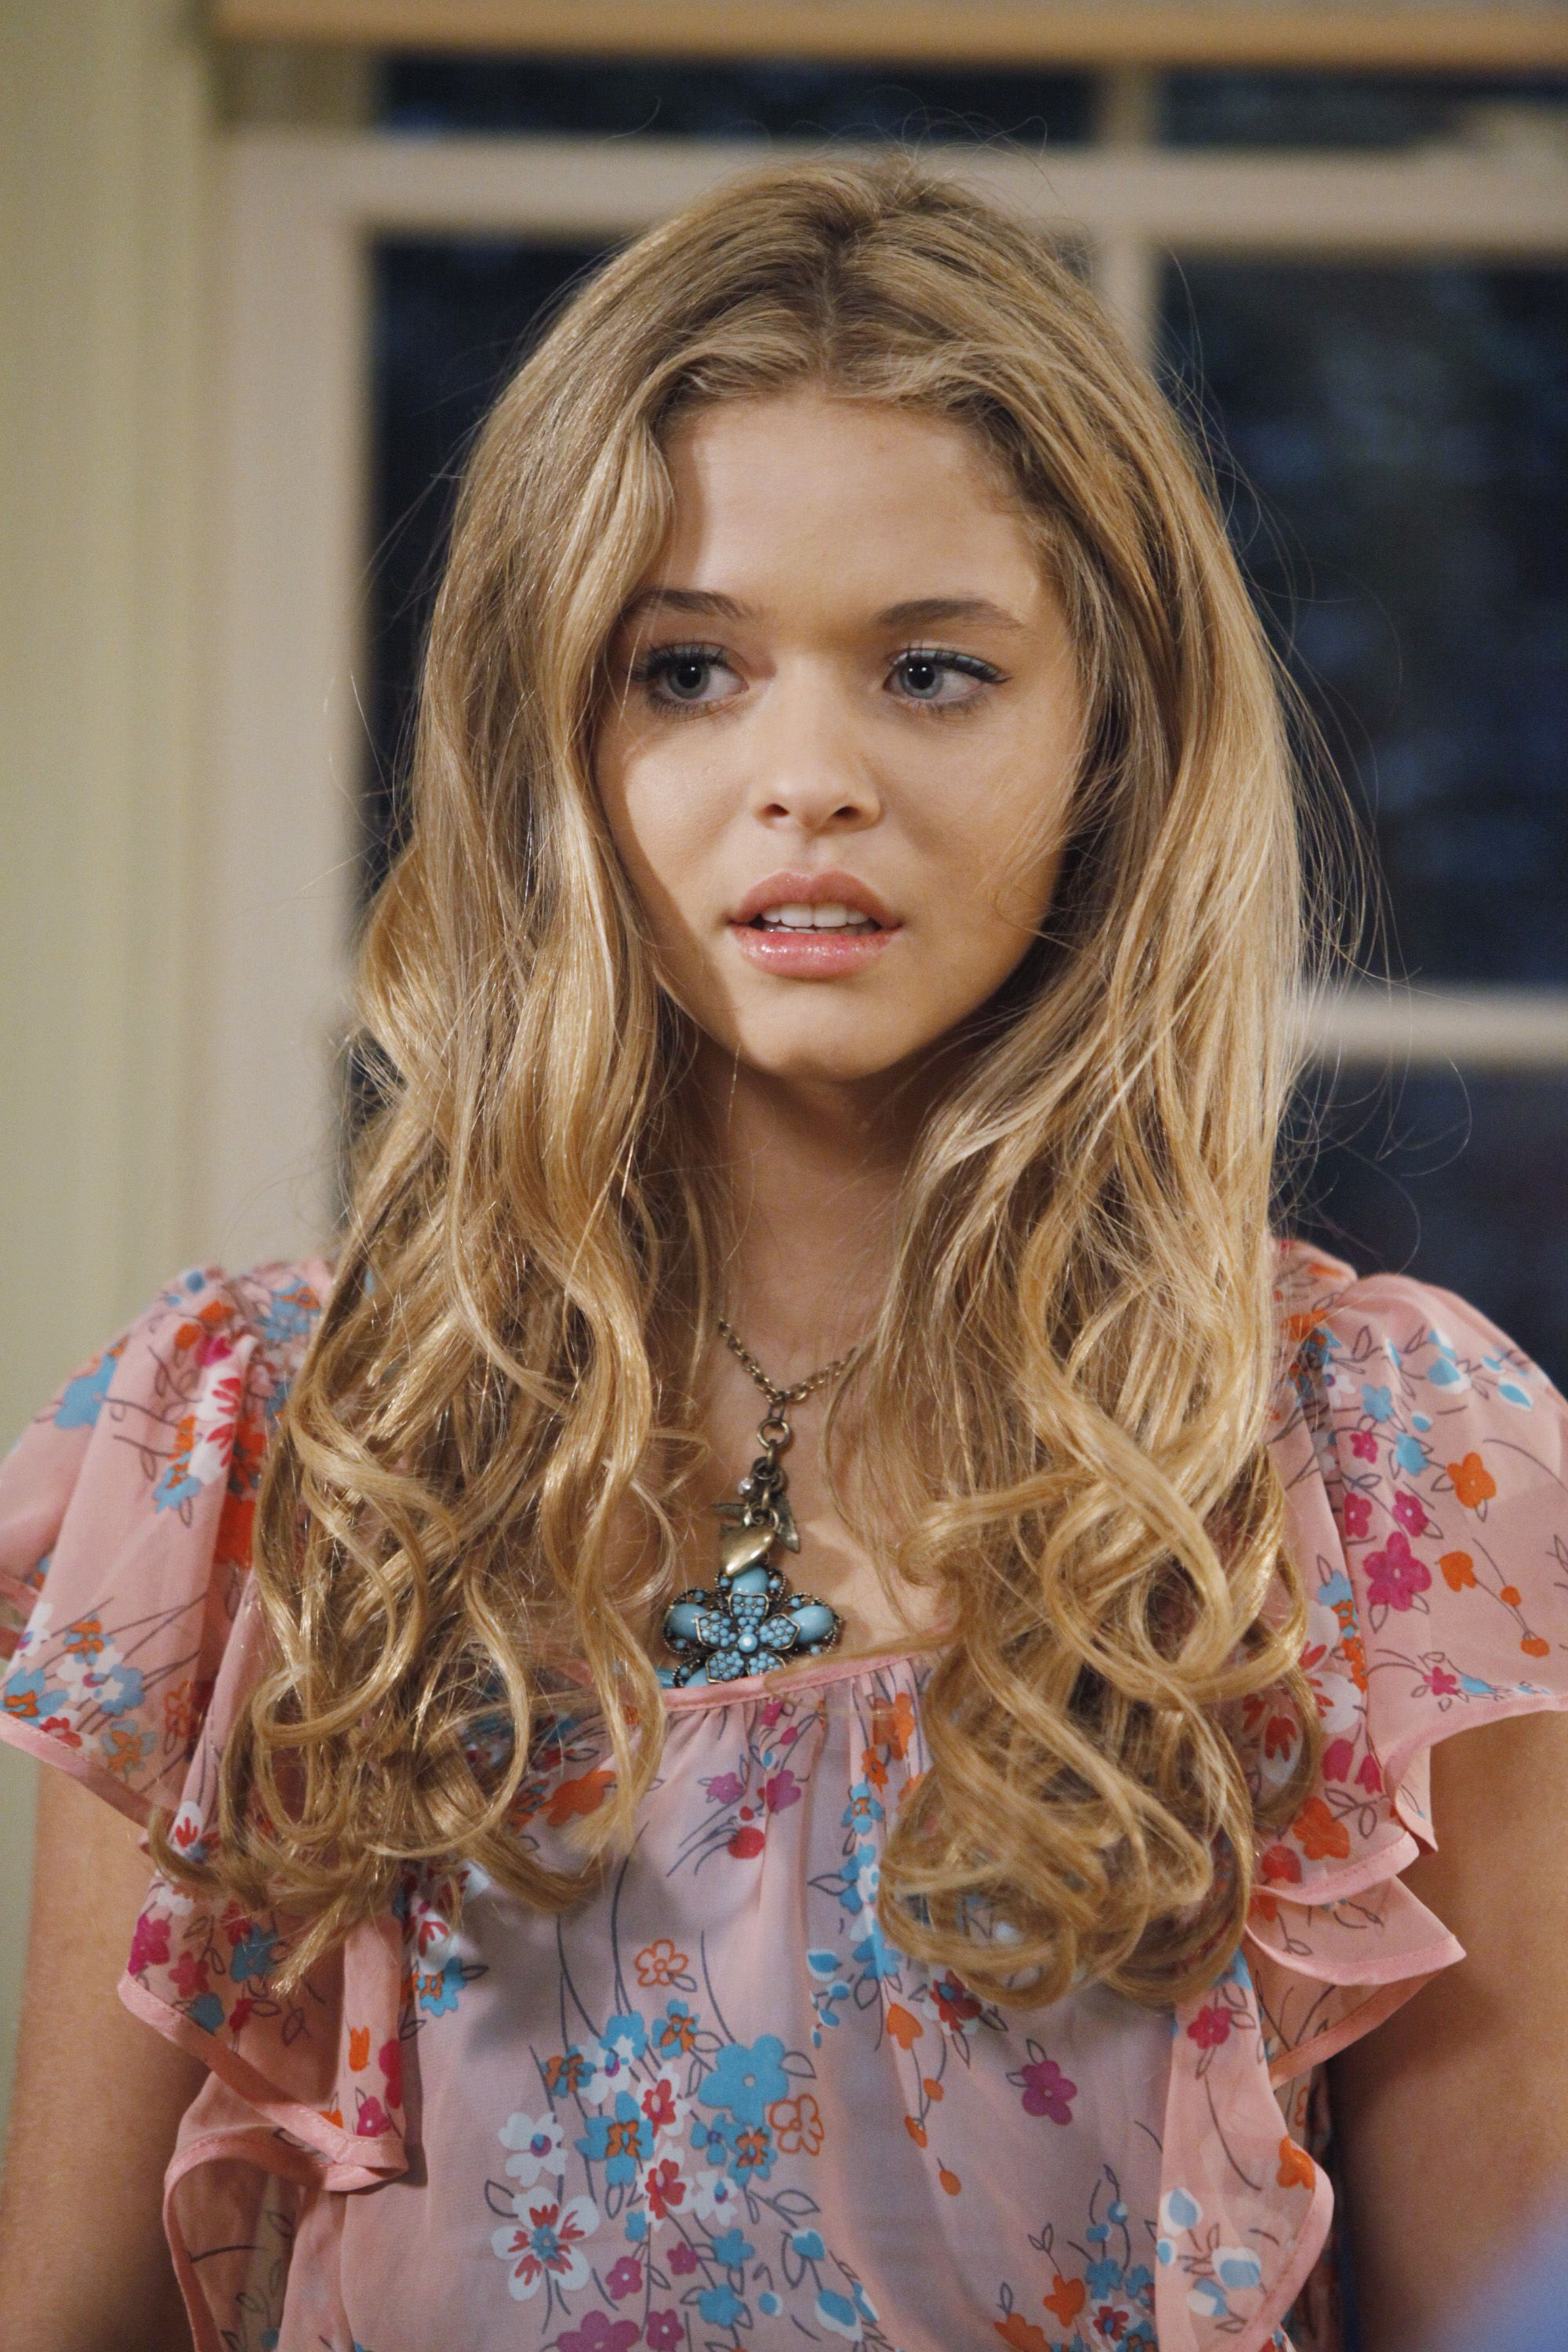 Do you remember why Ali made this face? Hint: It's got ...